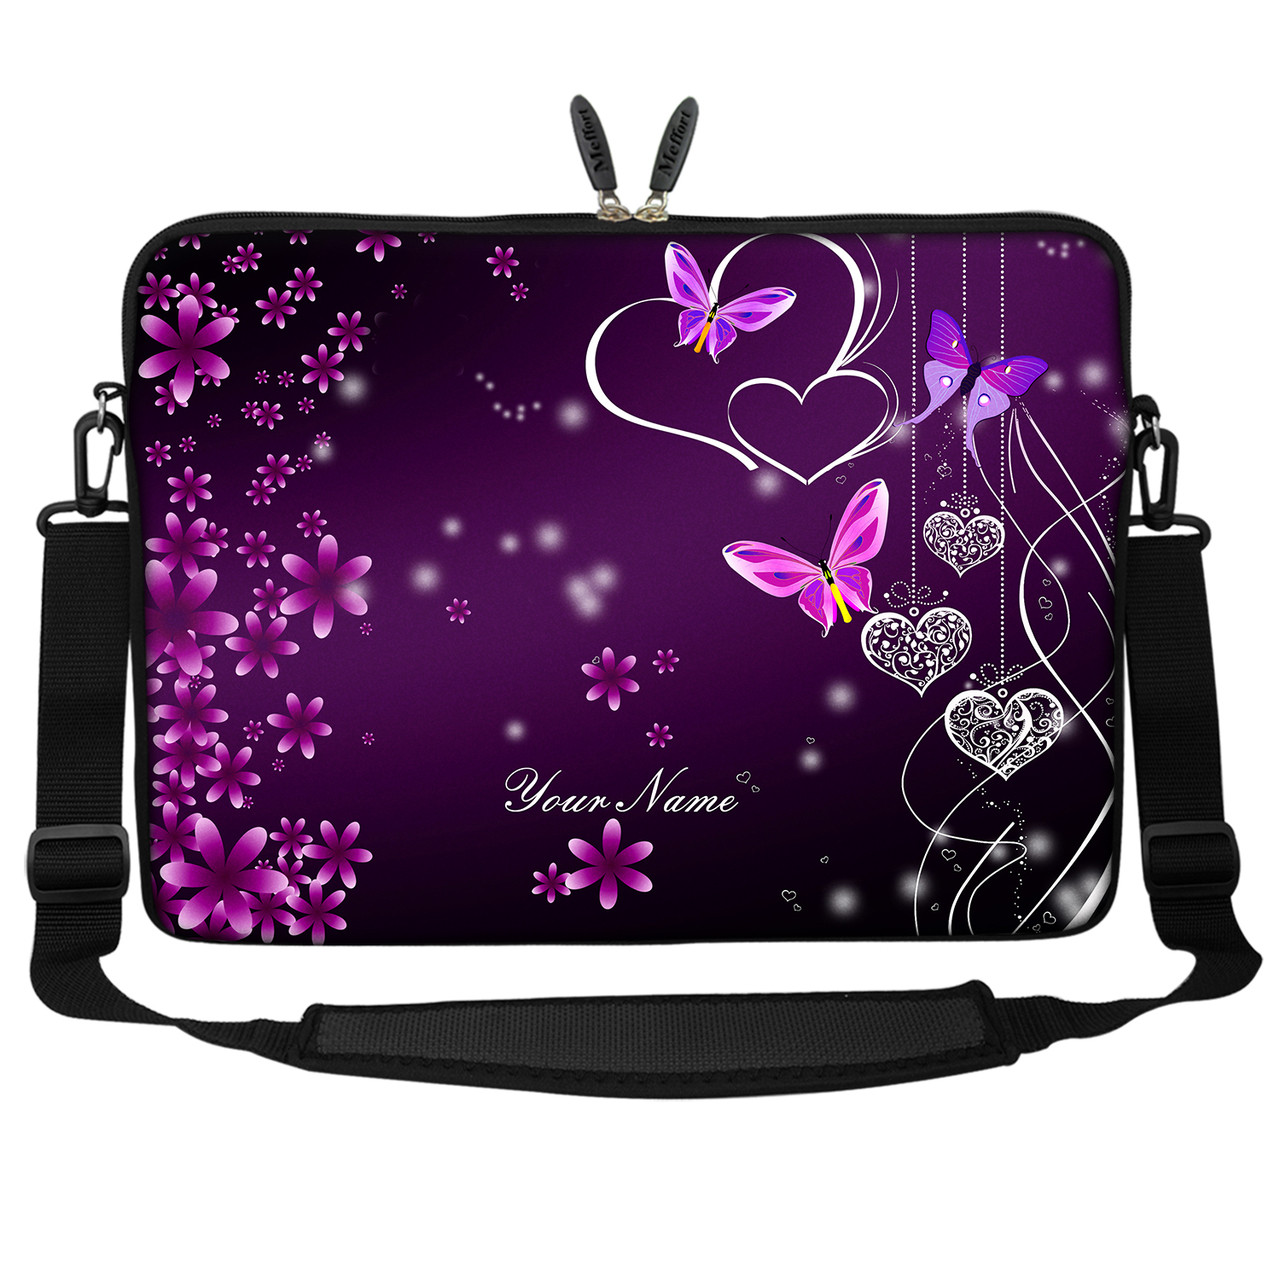 "13 13.3/"" Laptop Sleeve Bag with Hidden Handle Shoulder Strap 2252"